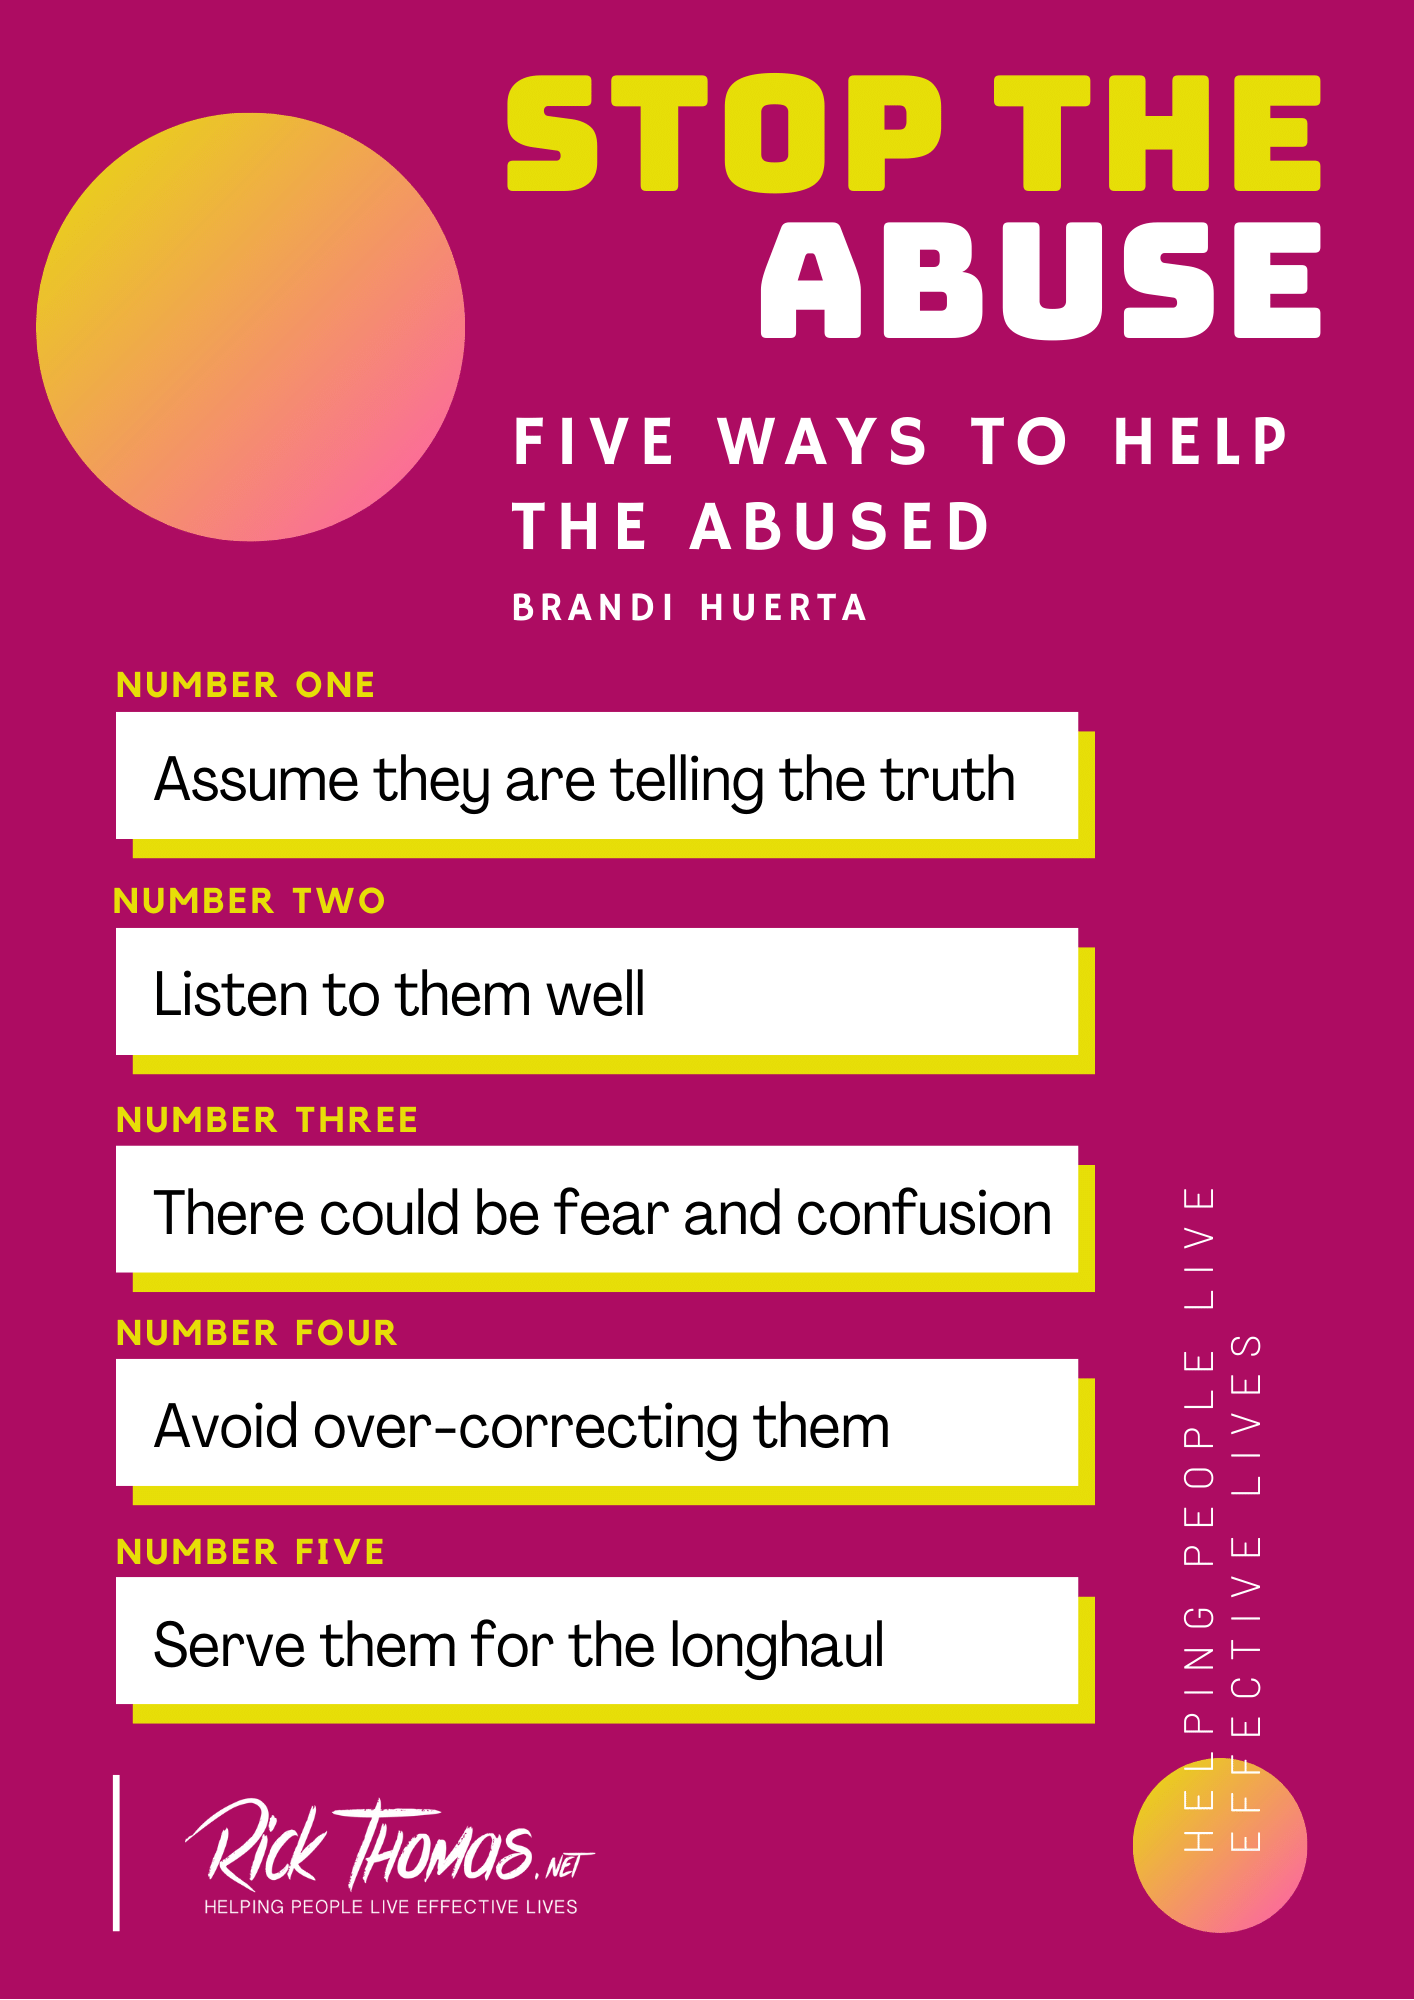 Five Ways To Help the Abuse (2)